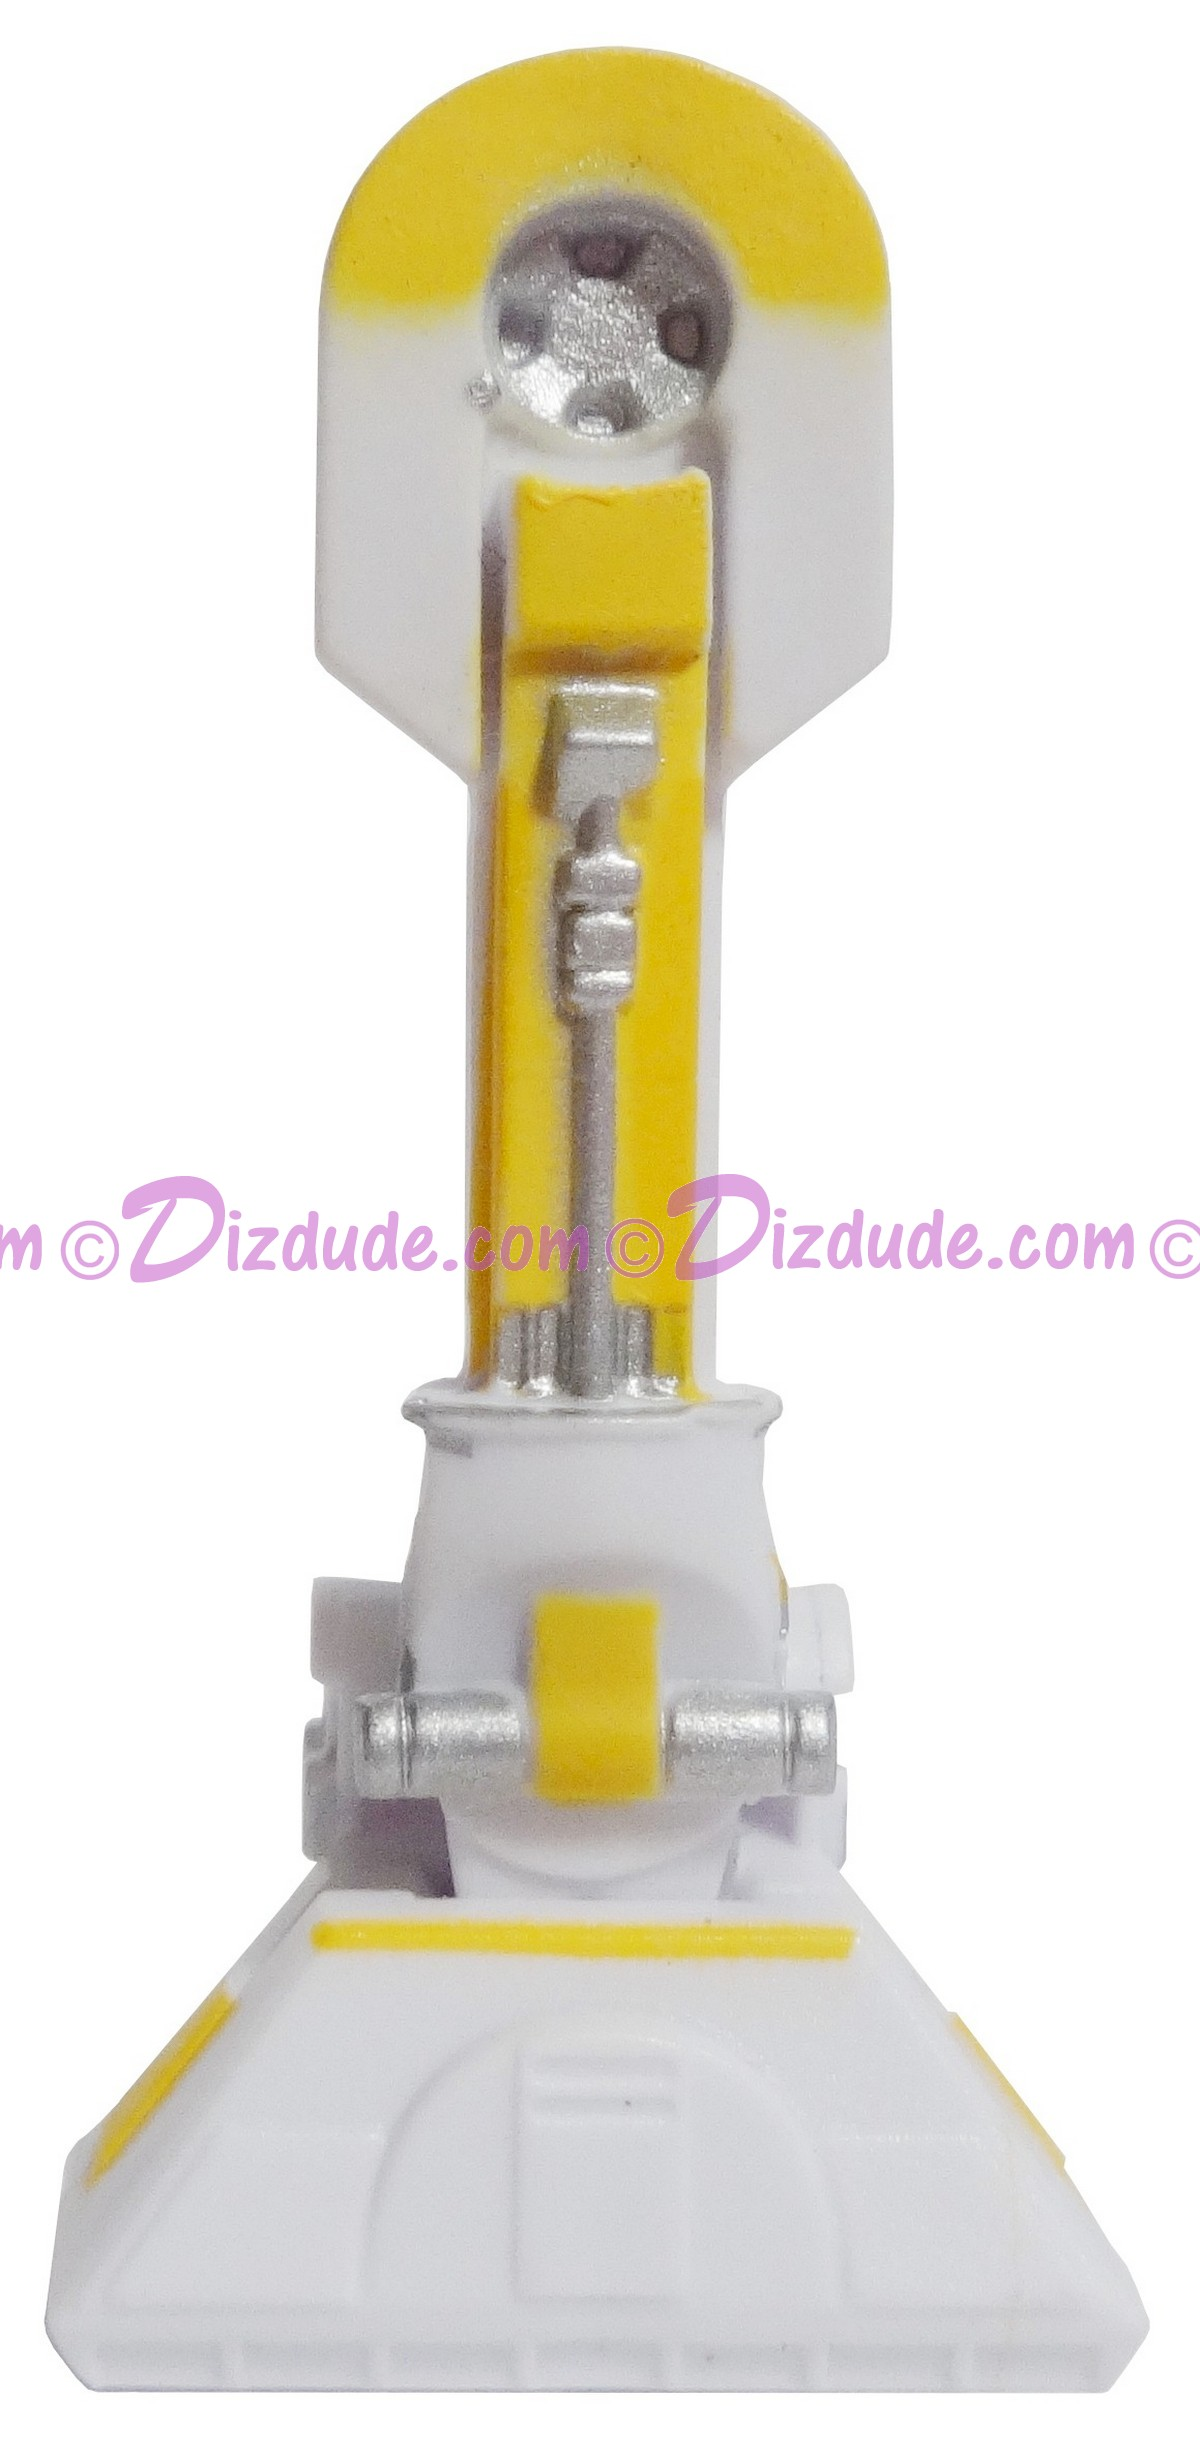 A Pair of White & Yellow Astromech Droid Leg Parts ~ Series 2 from Disney Star Wars Build-A-Droid Factory © Dizdude.com